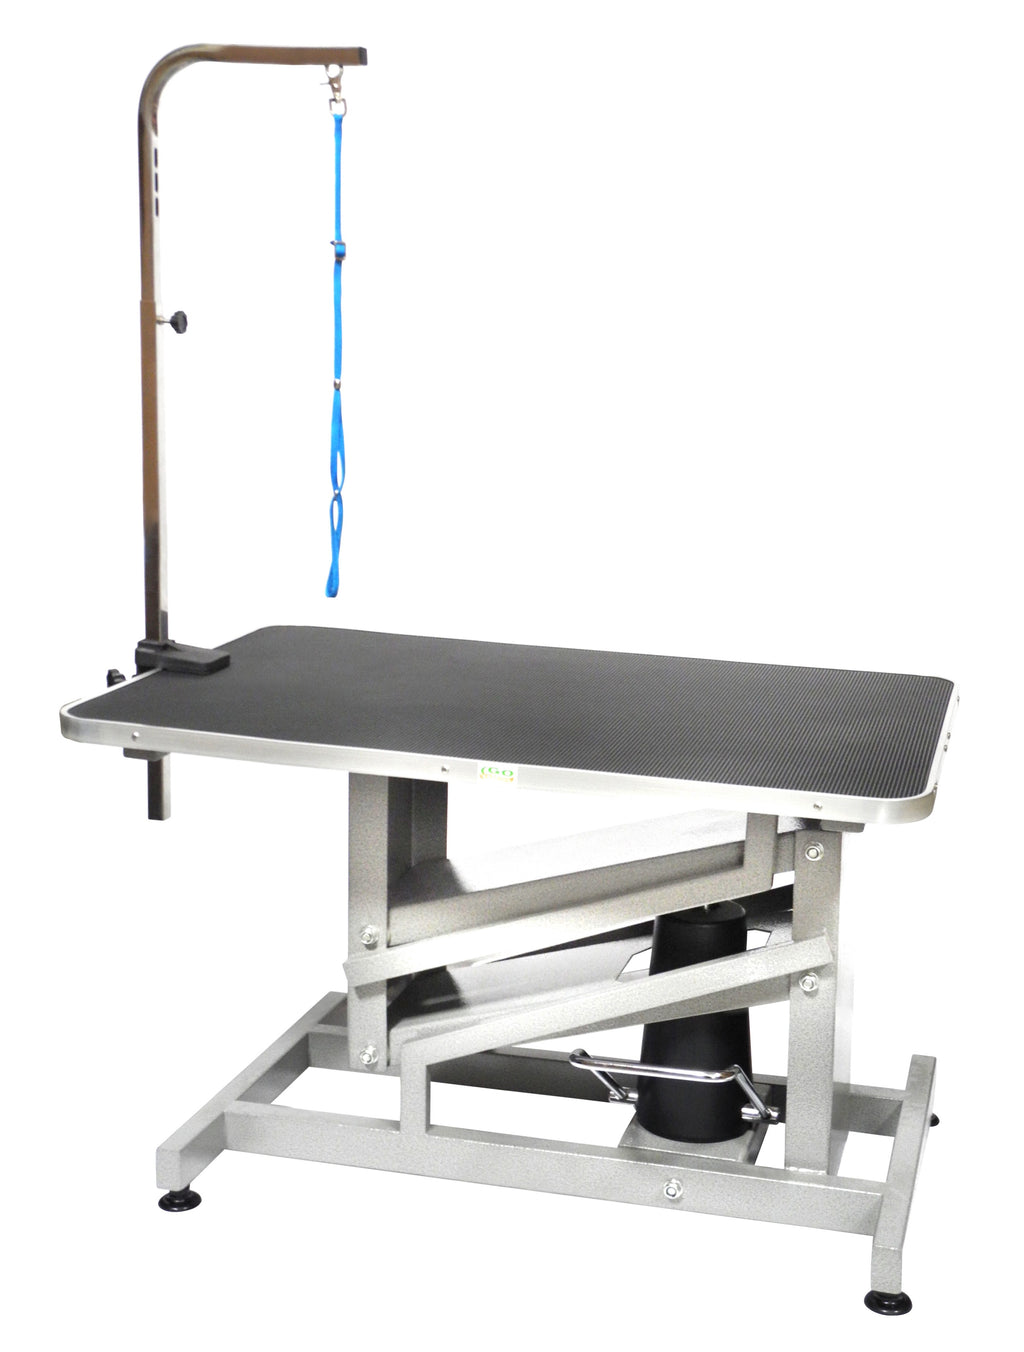 "36"" Z-Lift Hydraulic Grooming Professional Table with Arm (HGT-509)"